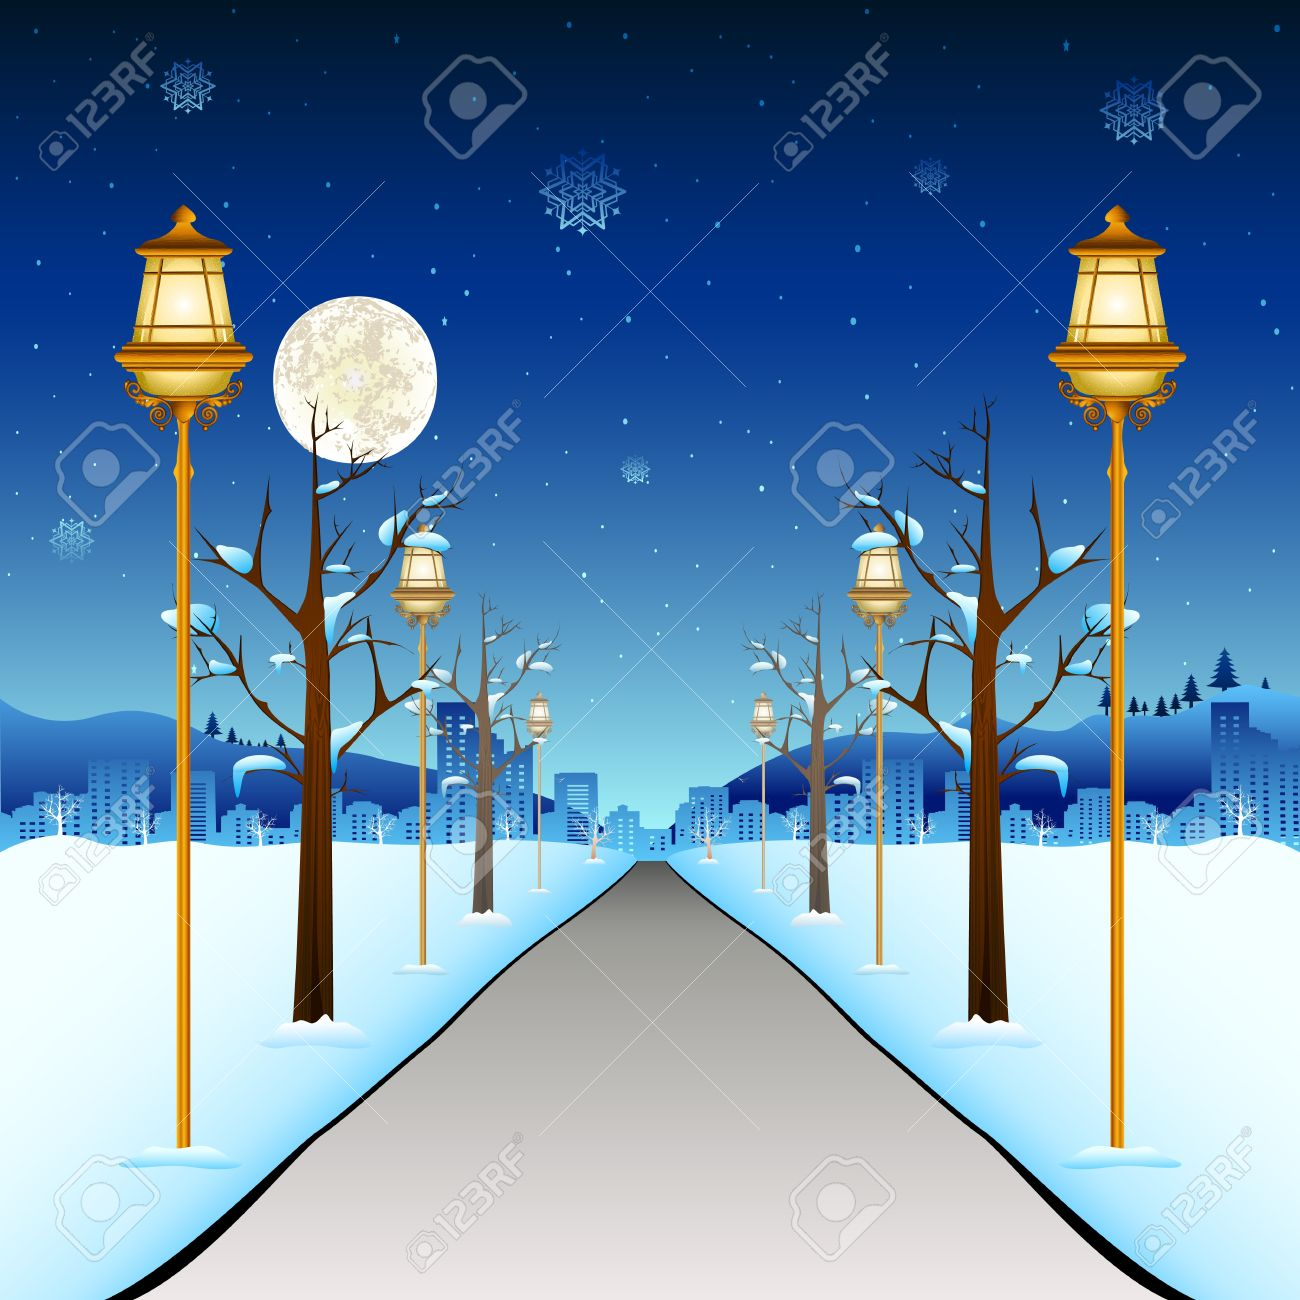 illustration of street with lamp post in winter season